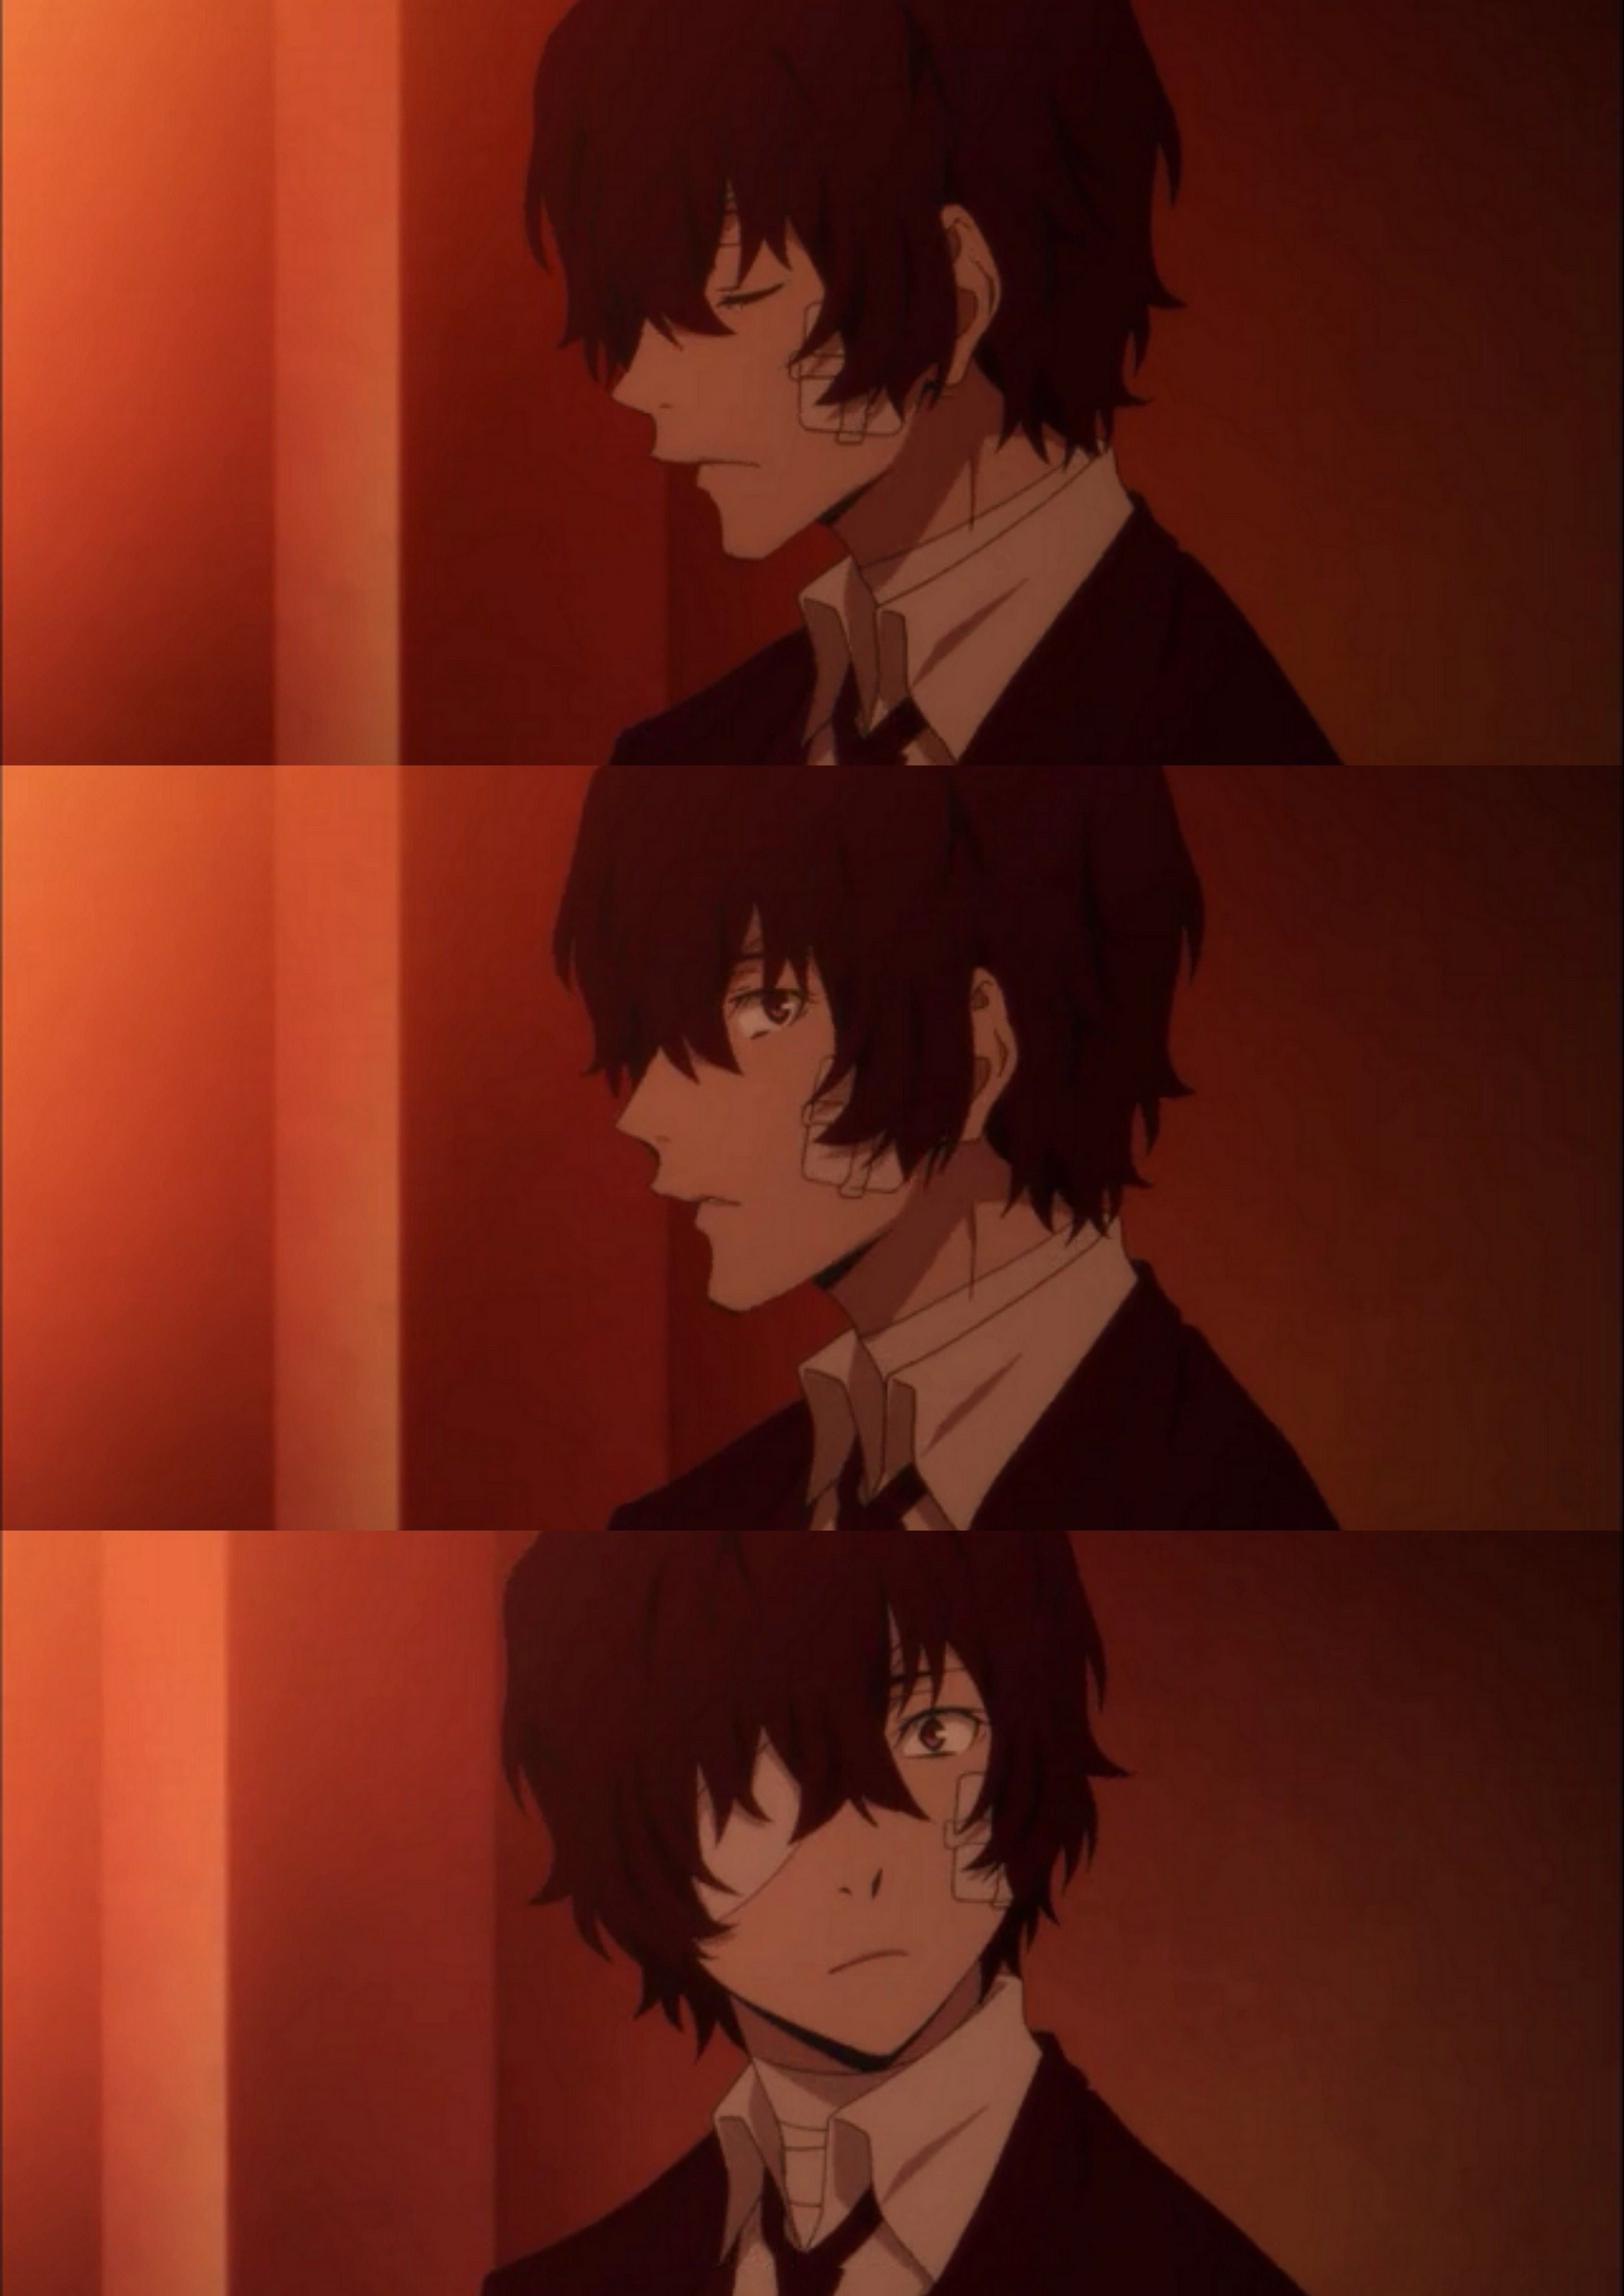 Pin By Douaa Awad On Anime Screen Captures With Images Stray